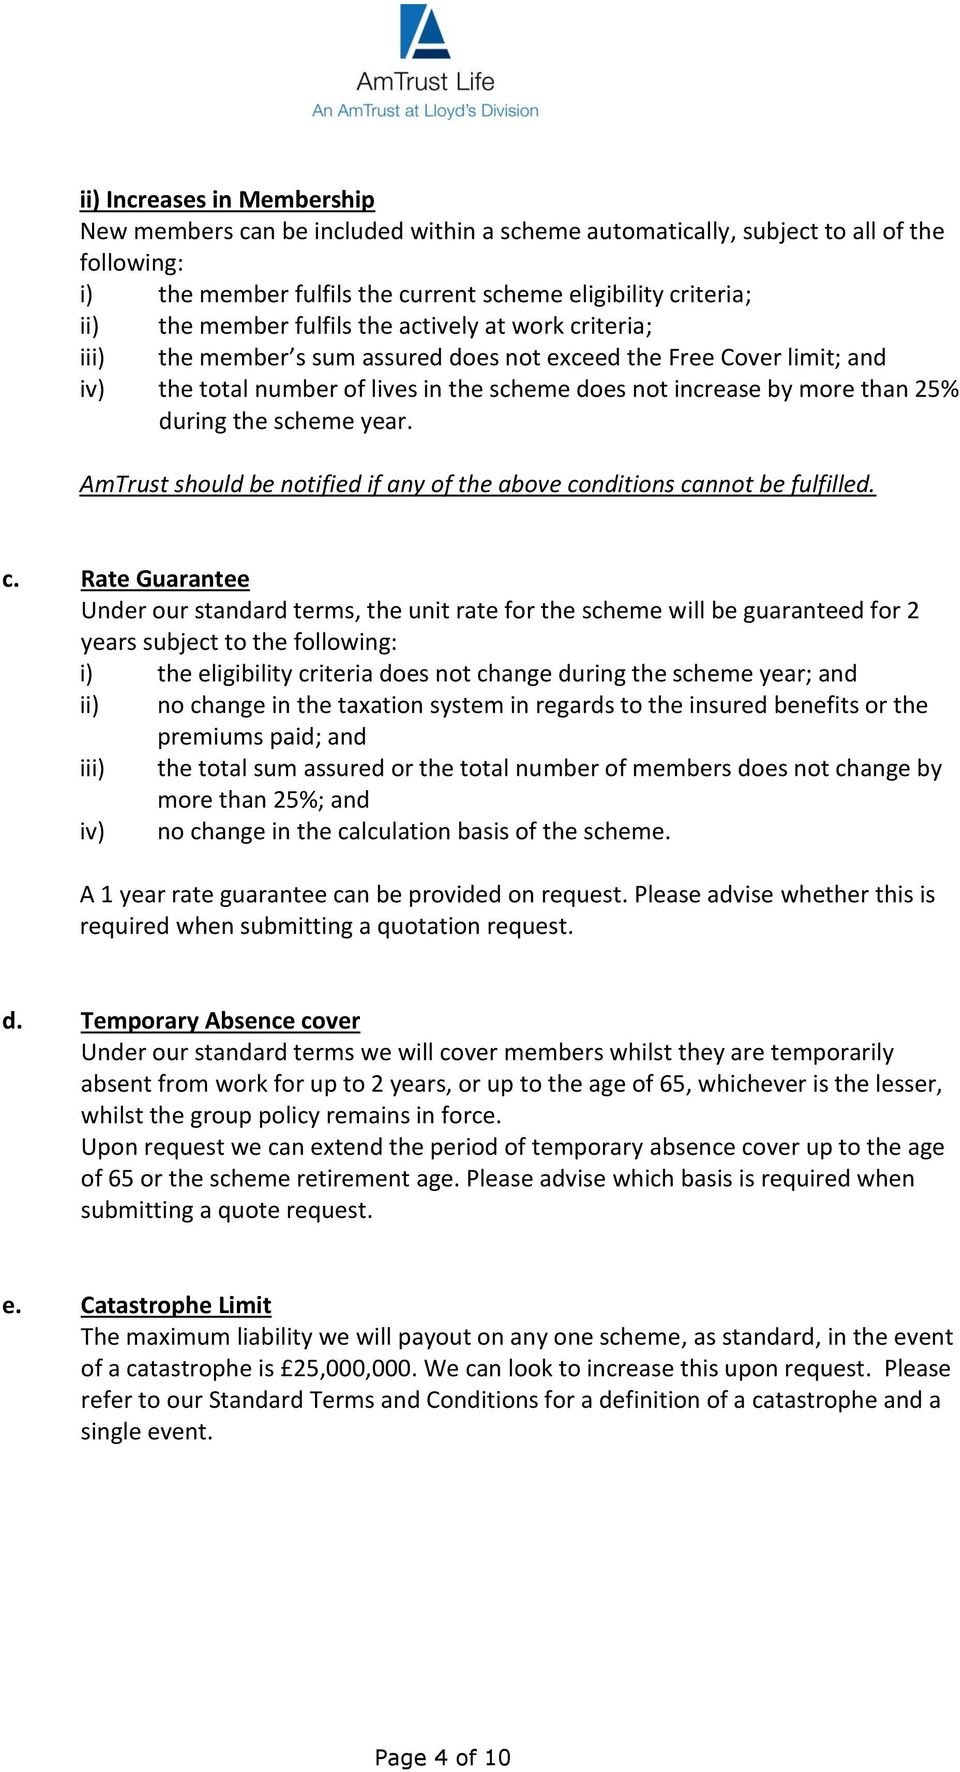 the scheme year. AmTrust should be notified if any of the above co